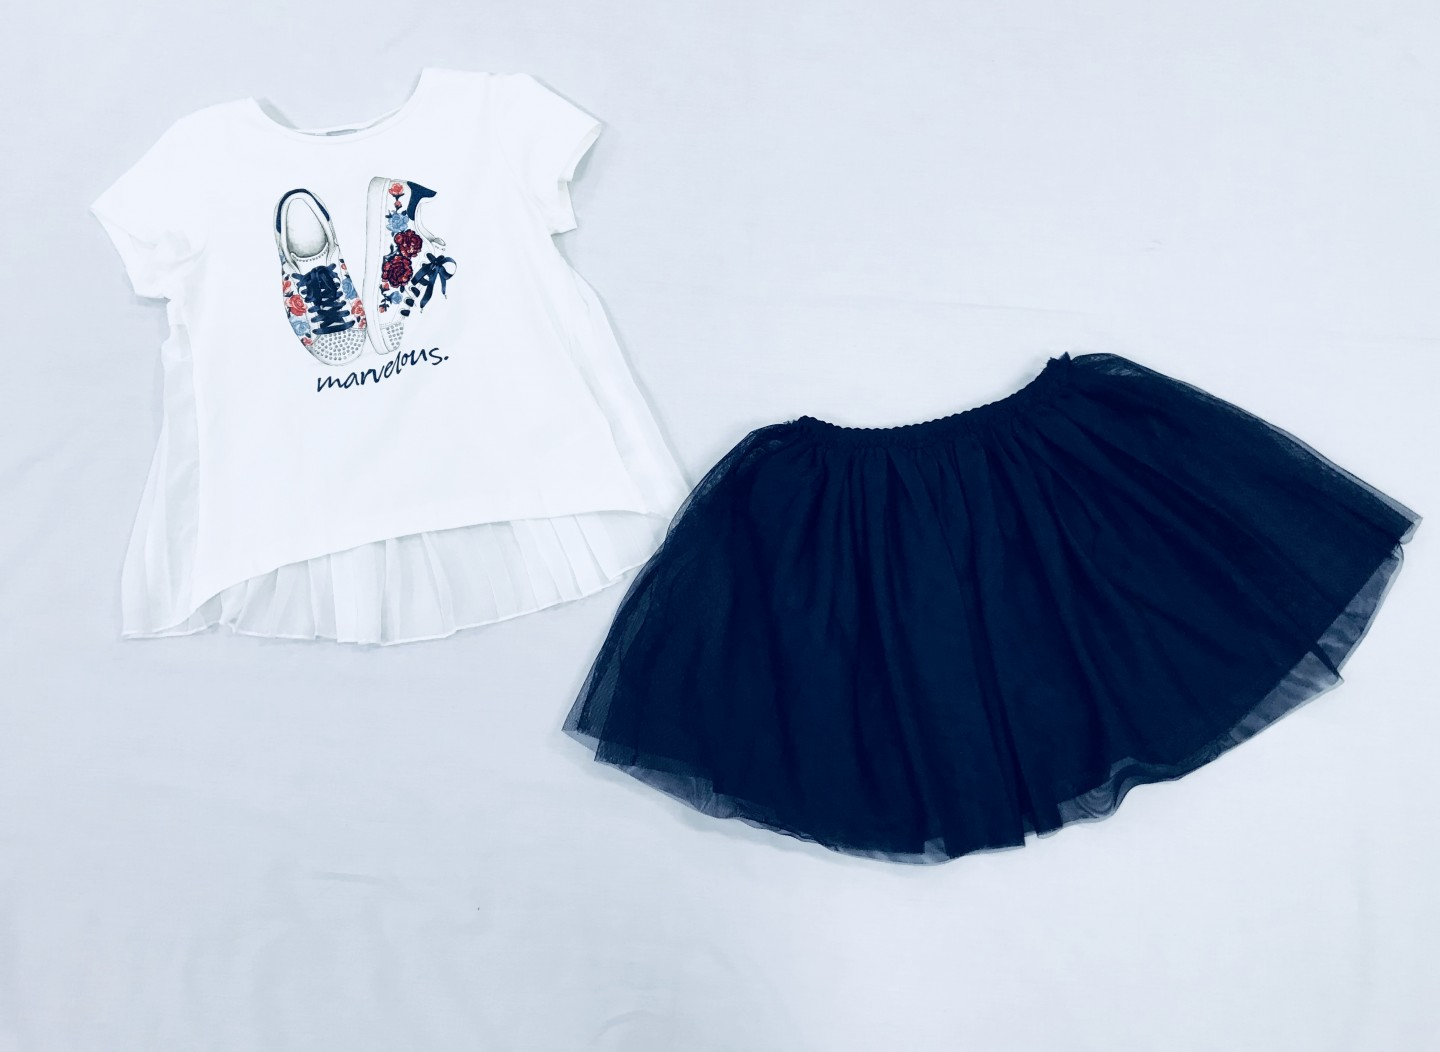 WHITE TOP WITH NAVY SKIRT 2-PIECE SET SIZES 8-14